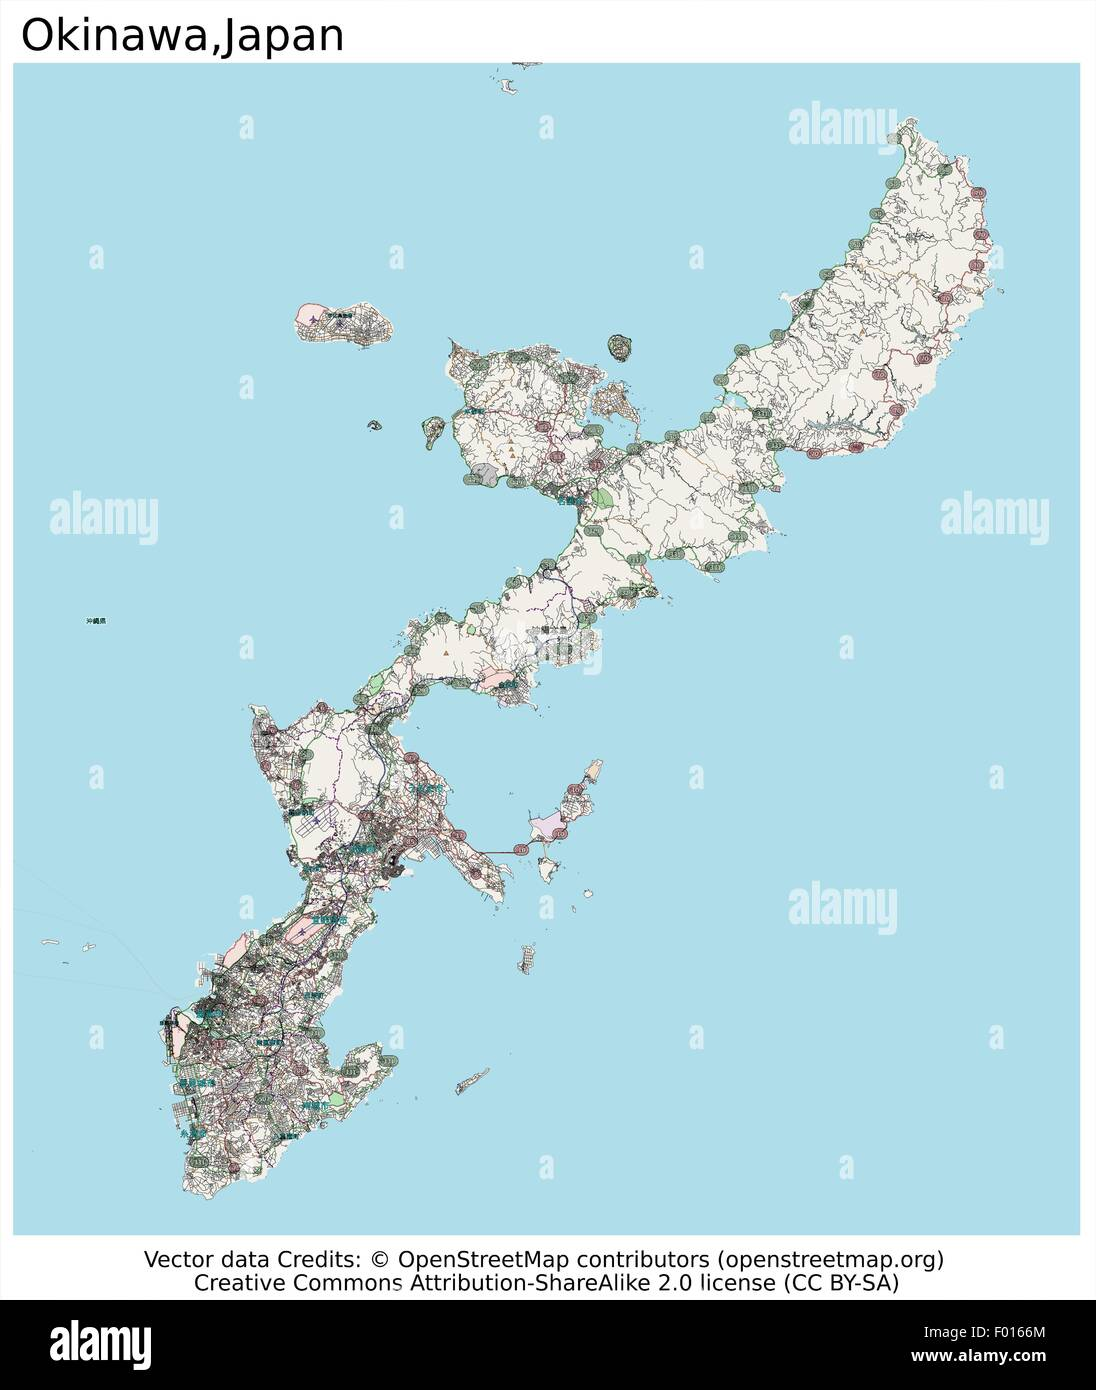 Okinawa island japan city map aerial view stock vector art okinawa island japan city map aerial view gumiabroncs Images